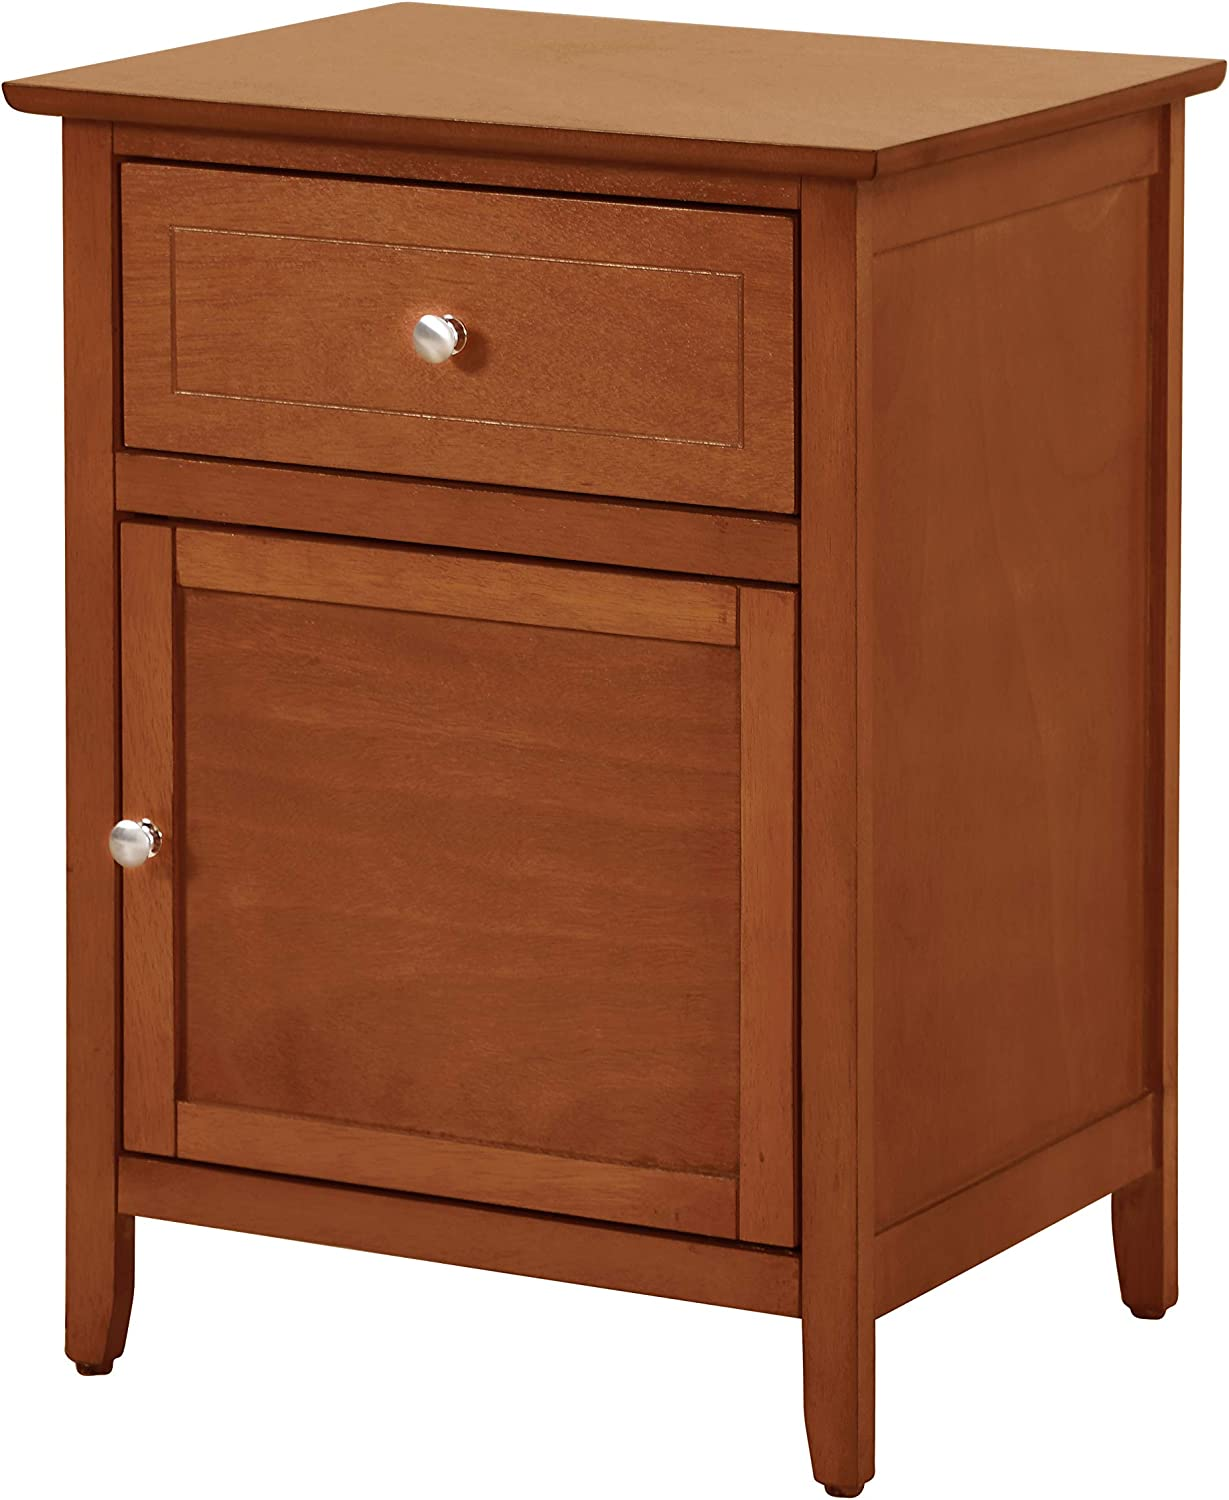 Glory Furniture 1 Drawer /1 Door Nightstand, Oak